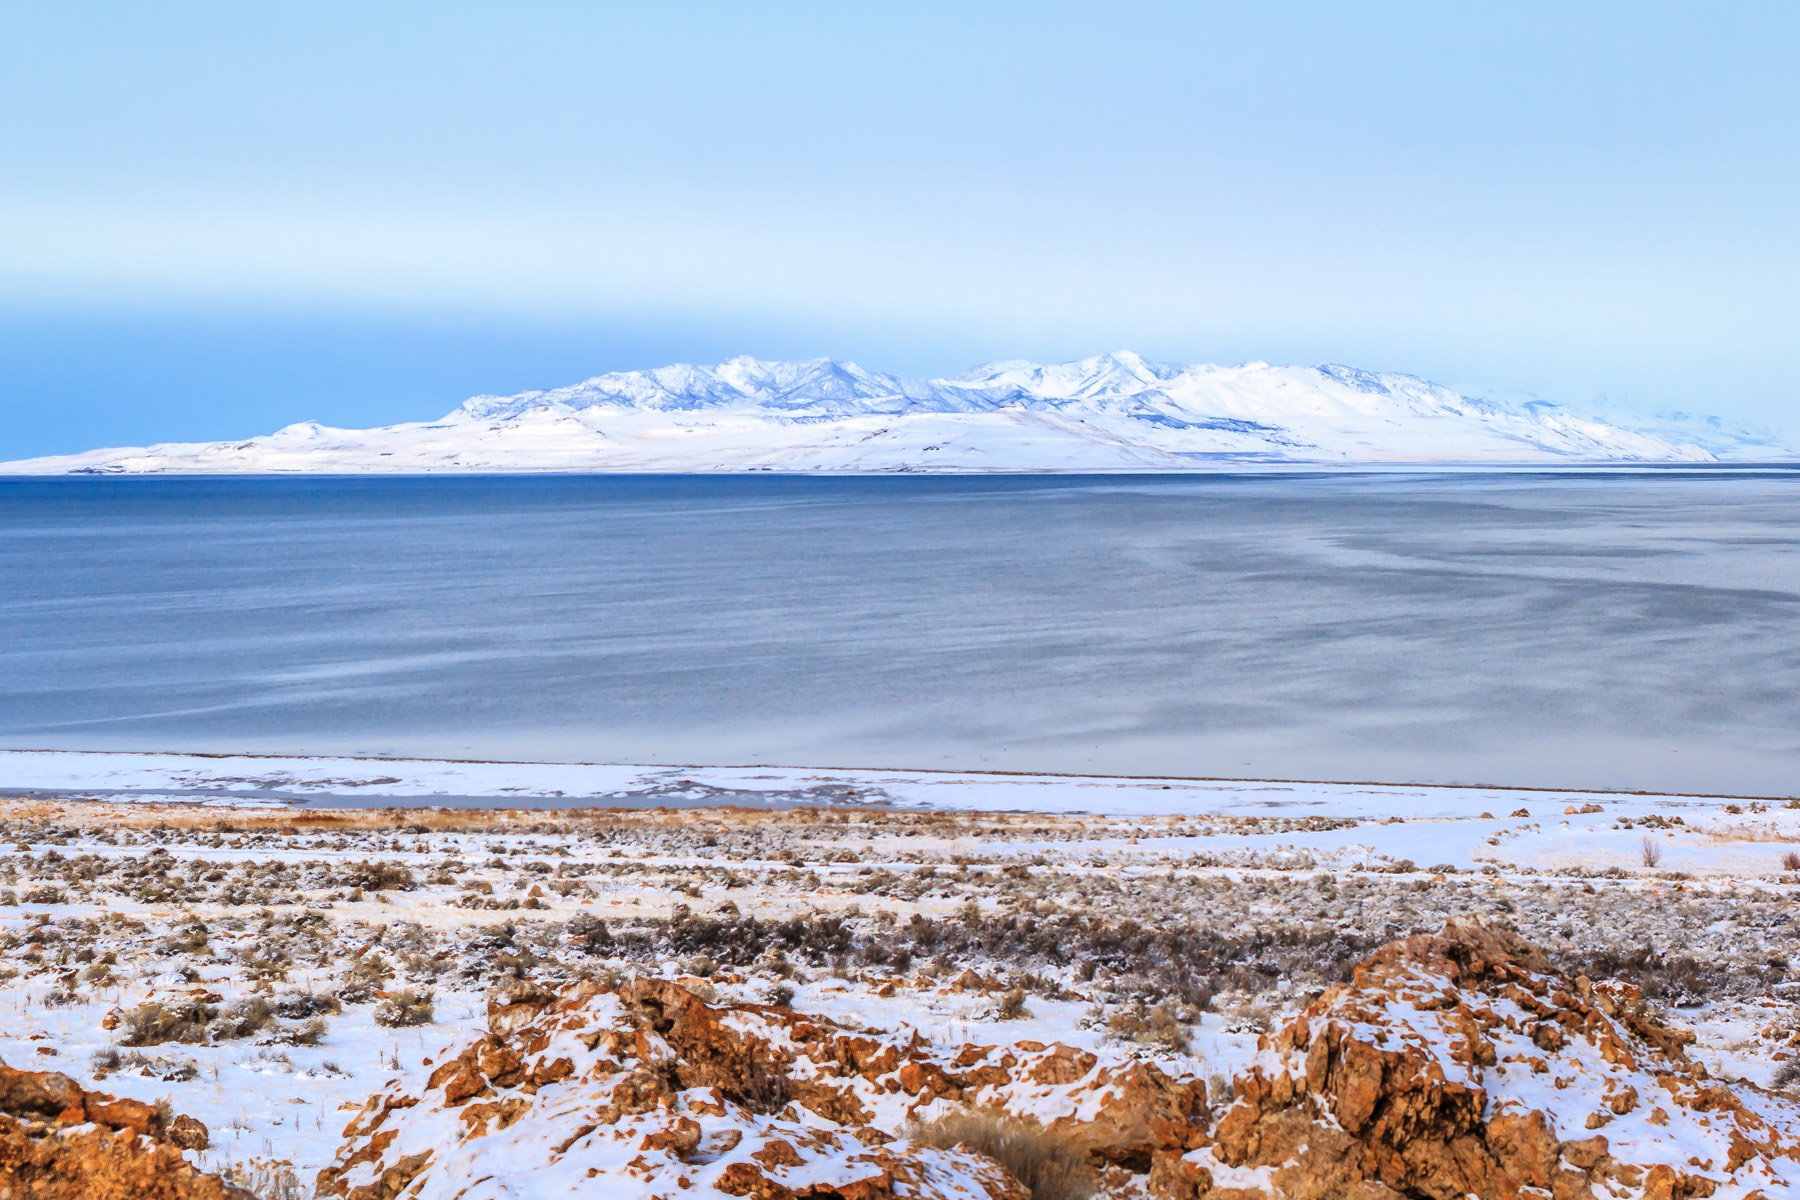 A mountain rises from the Great Salt Lake, Utah, as seen from Antelope Island.